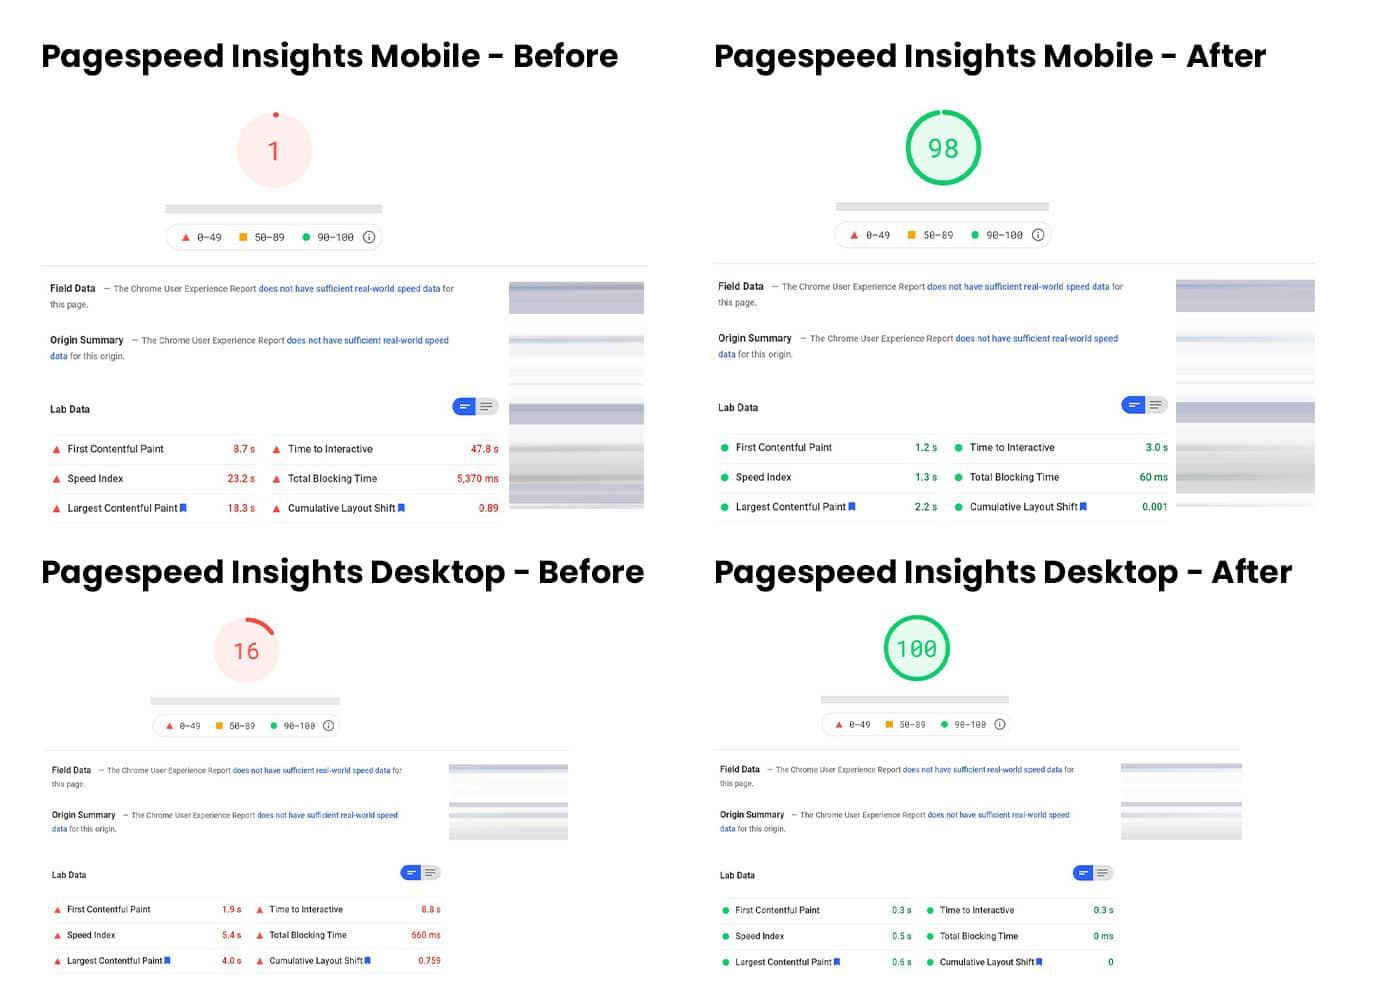 Pagespeed insights results showing mobile score at 1 before and 98 after site speed optimization. Desktop was at 16 before and now sitting at 100.